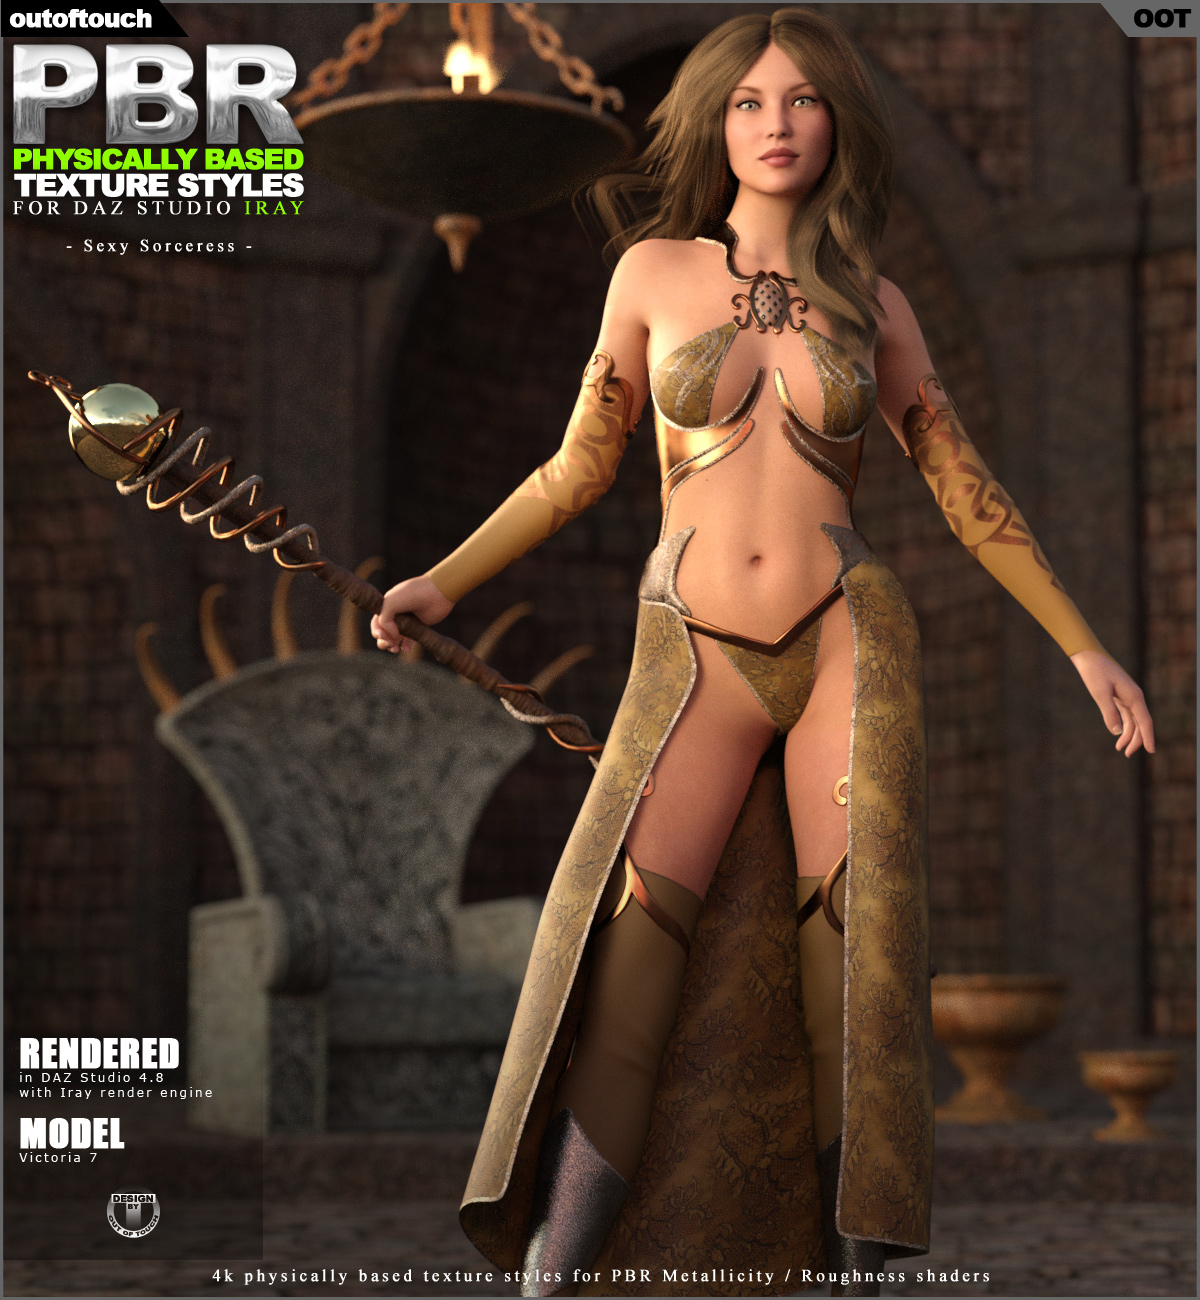 3D Sexy Game oot pbr texture styles for sexy sorceress 3d figure assets